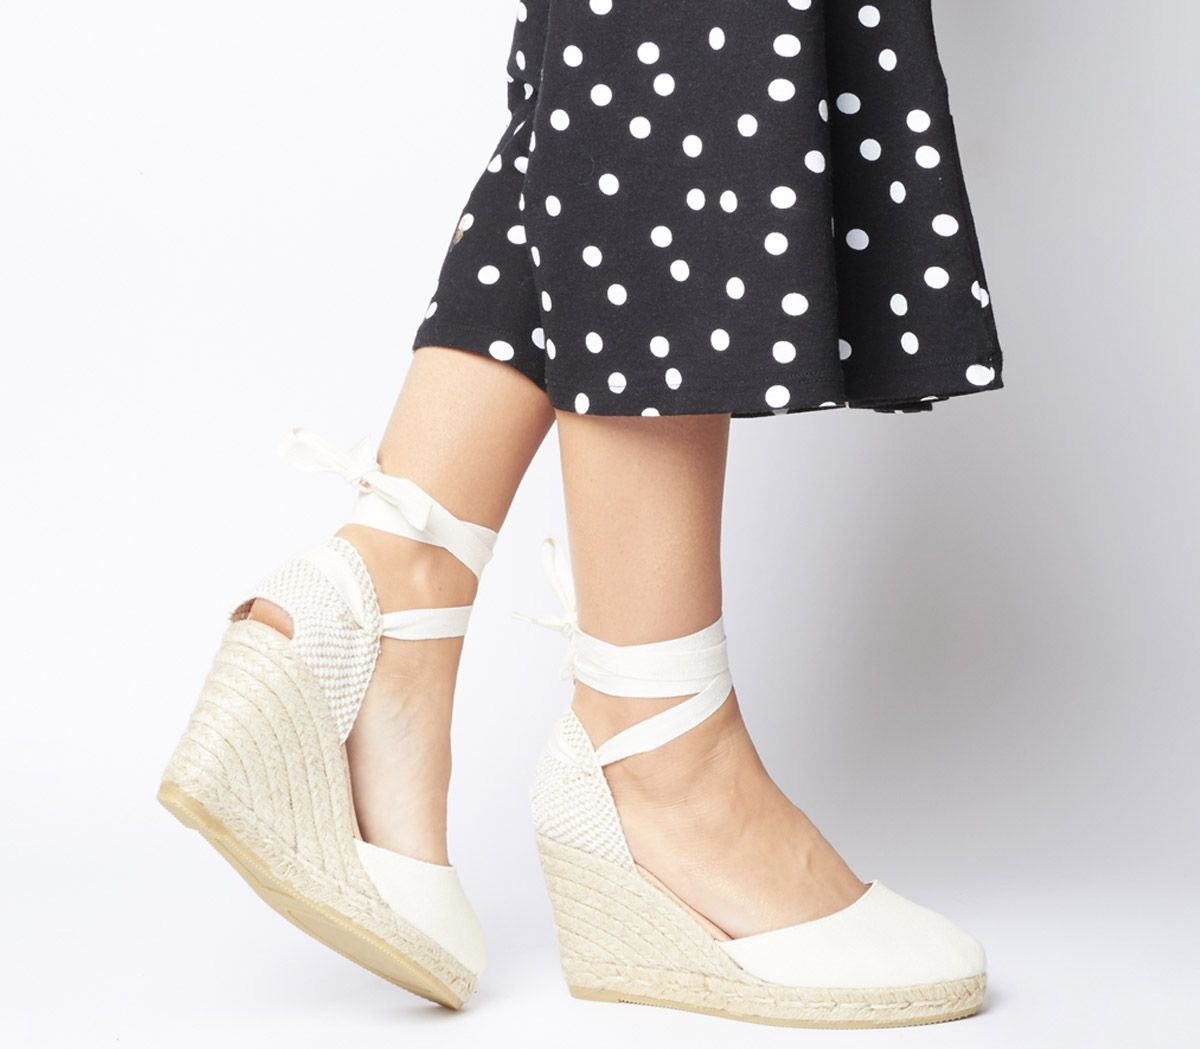 9e027b8ce89 Gaimo for OFFICE Ankle Wrap Espadrille Wedges Natural Canvas - Wedges